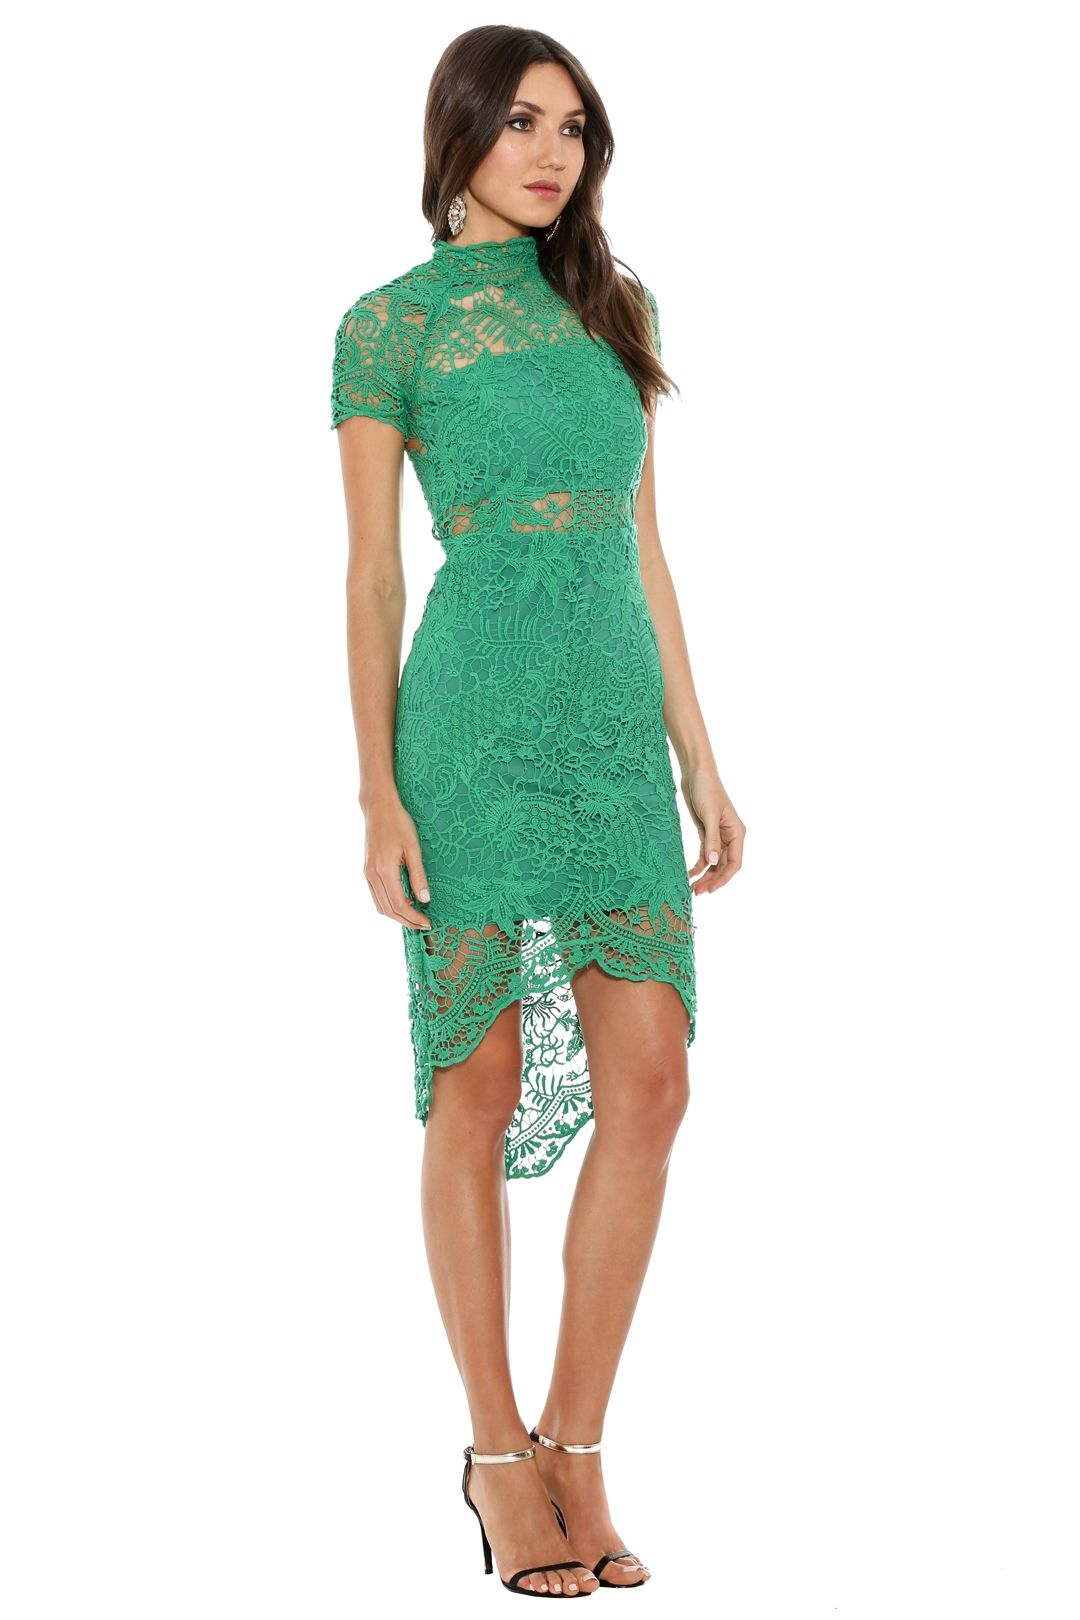 Thurley - Bed of Roses Lace Dress - Green - Side